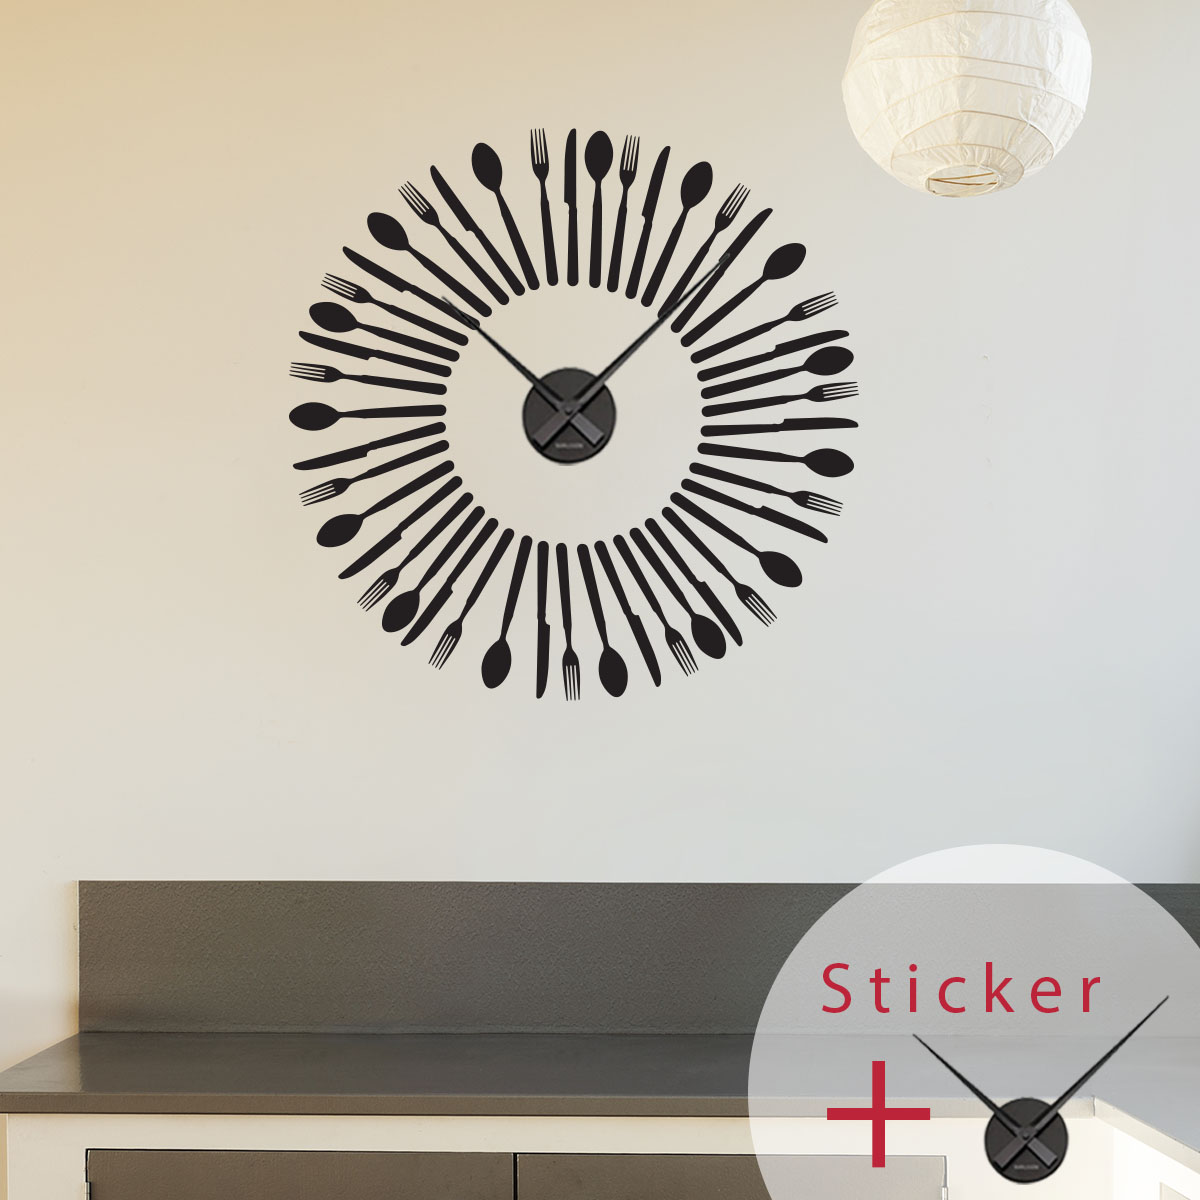 Sticker horloge couverts stickers d co horloges ambiance for Horloge couvert